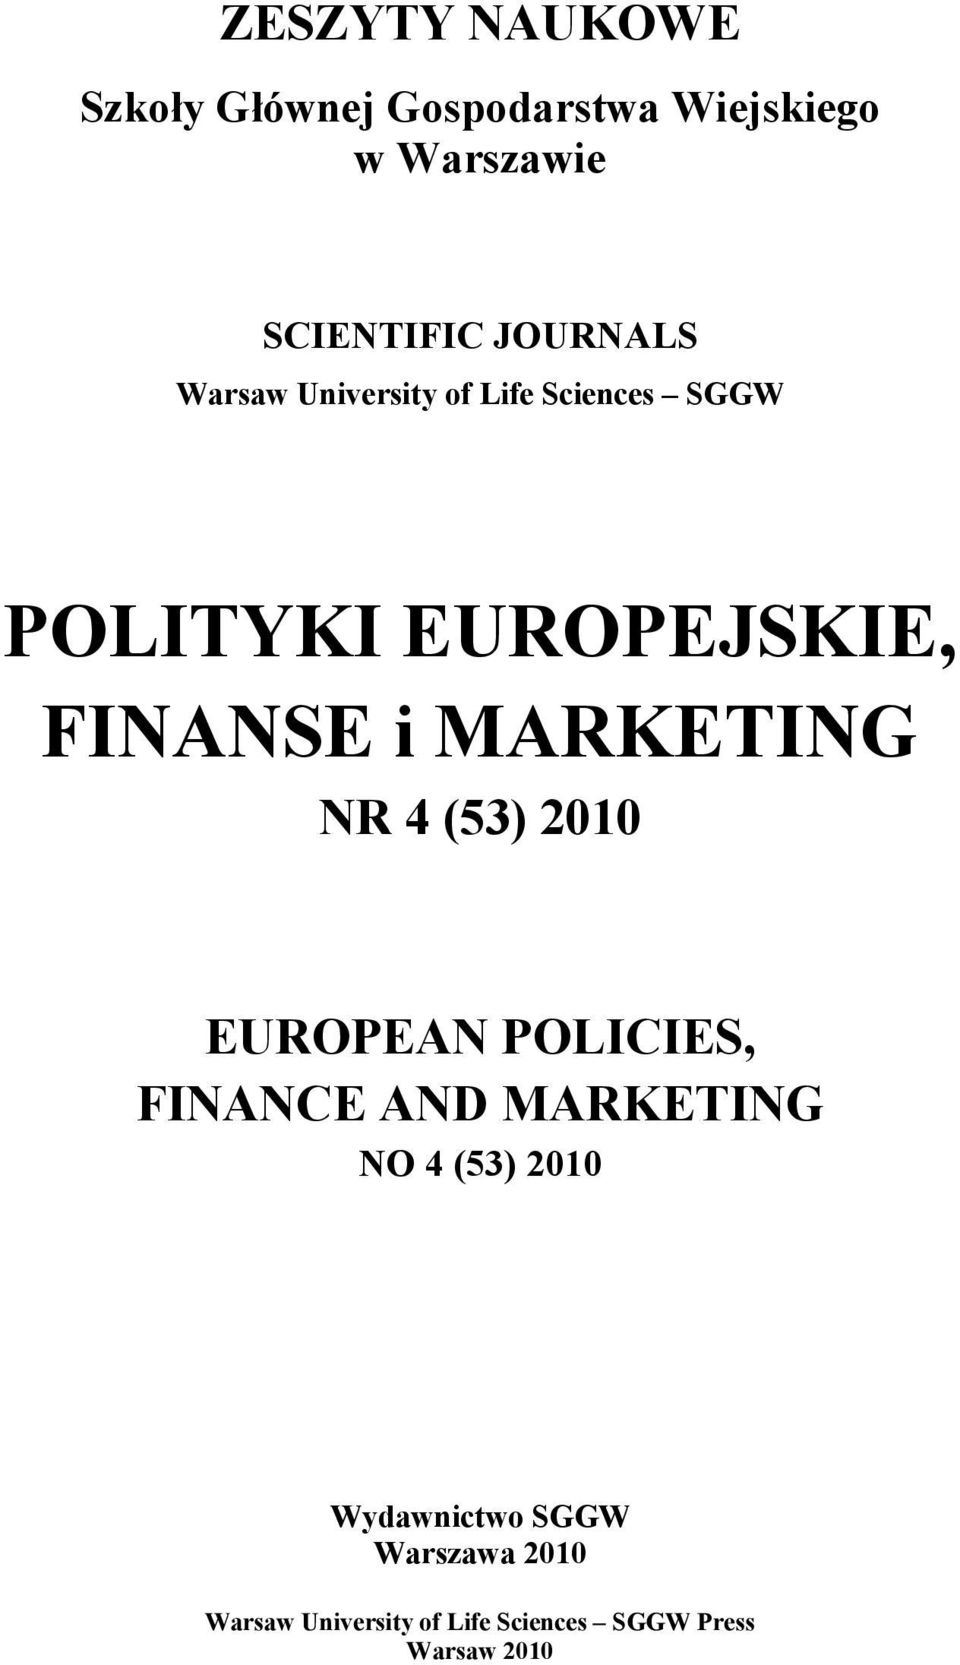 MARKETING NR 4 (53) 2010 EUROPEAN POLICIES, FINANCE AND MARKETING NO 4 (53) 2010